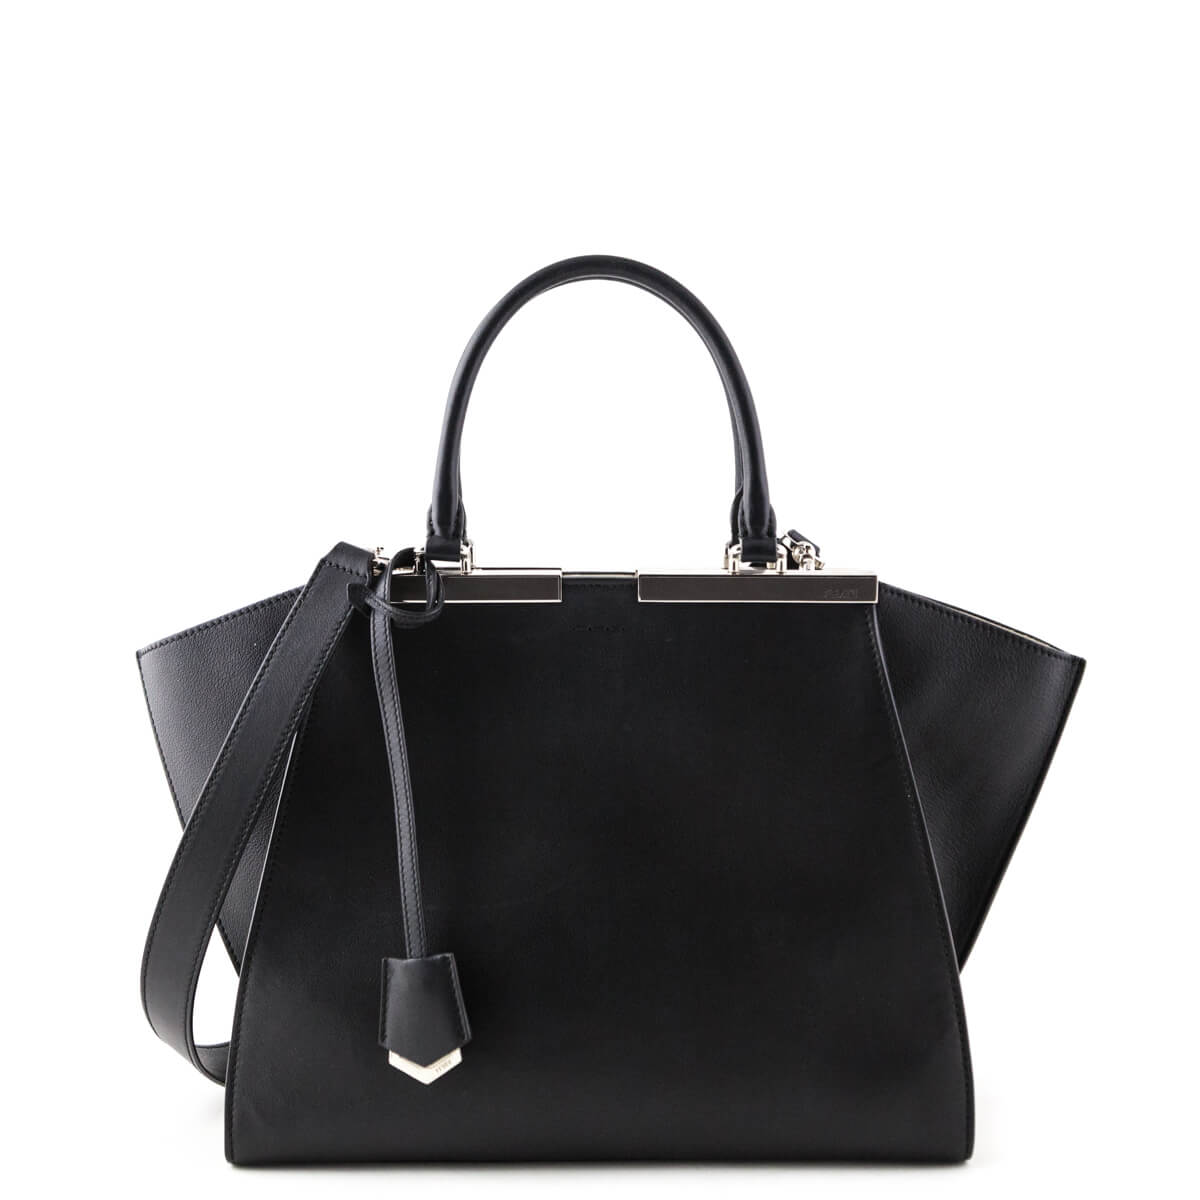 beb5bf8865ff Fendi Black Calfskin 3 Jours Tote - LOVE that BAG - Preowned Authentic  Designer Handbags ...